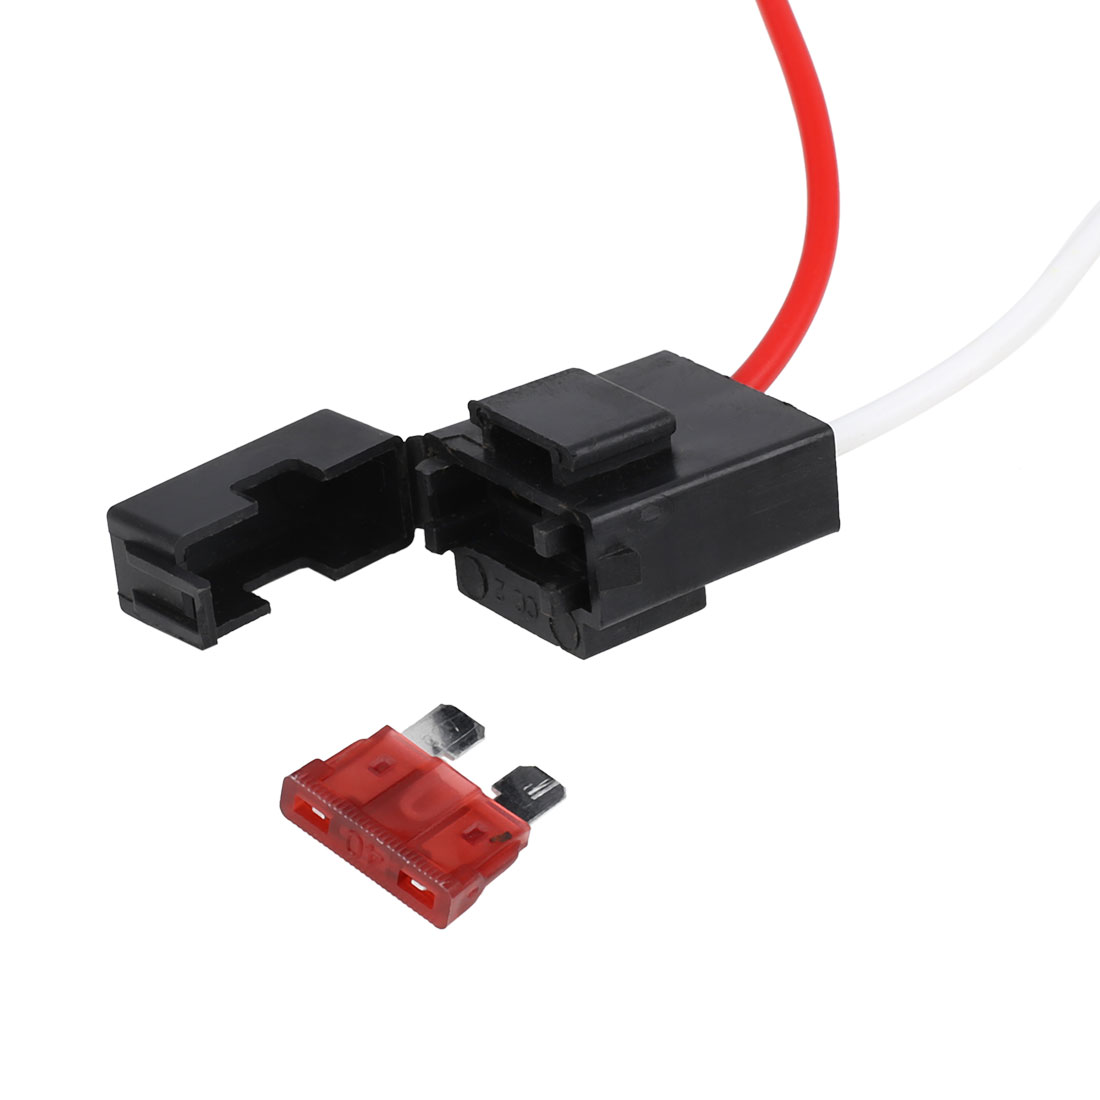 hight resolution of dc 12v car truck grille mount blast tone speaker wiring harness easy wiring harness kit car